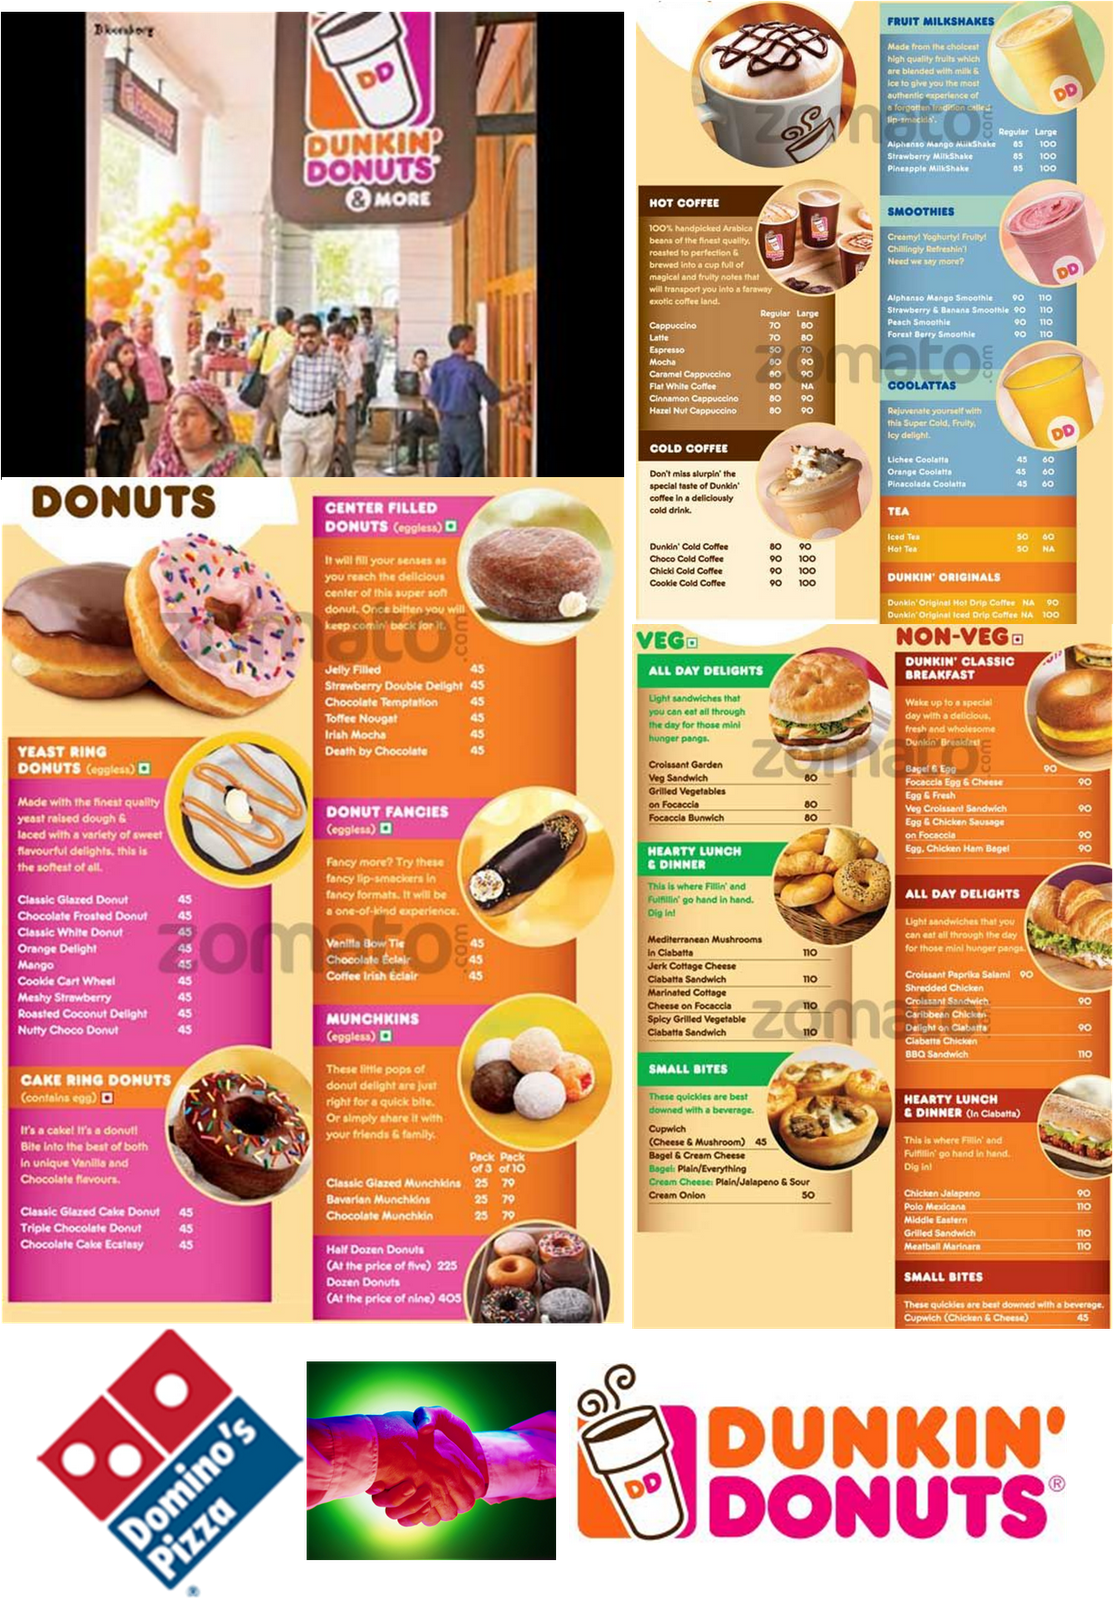 The Restaurant Business in India : Dunkin Donuts launched ...